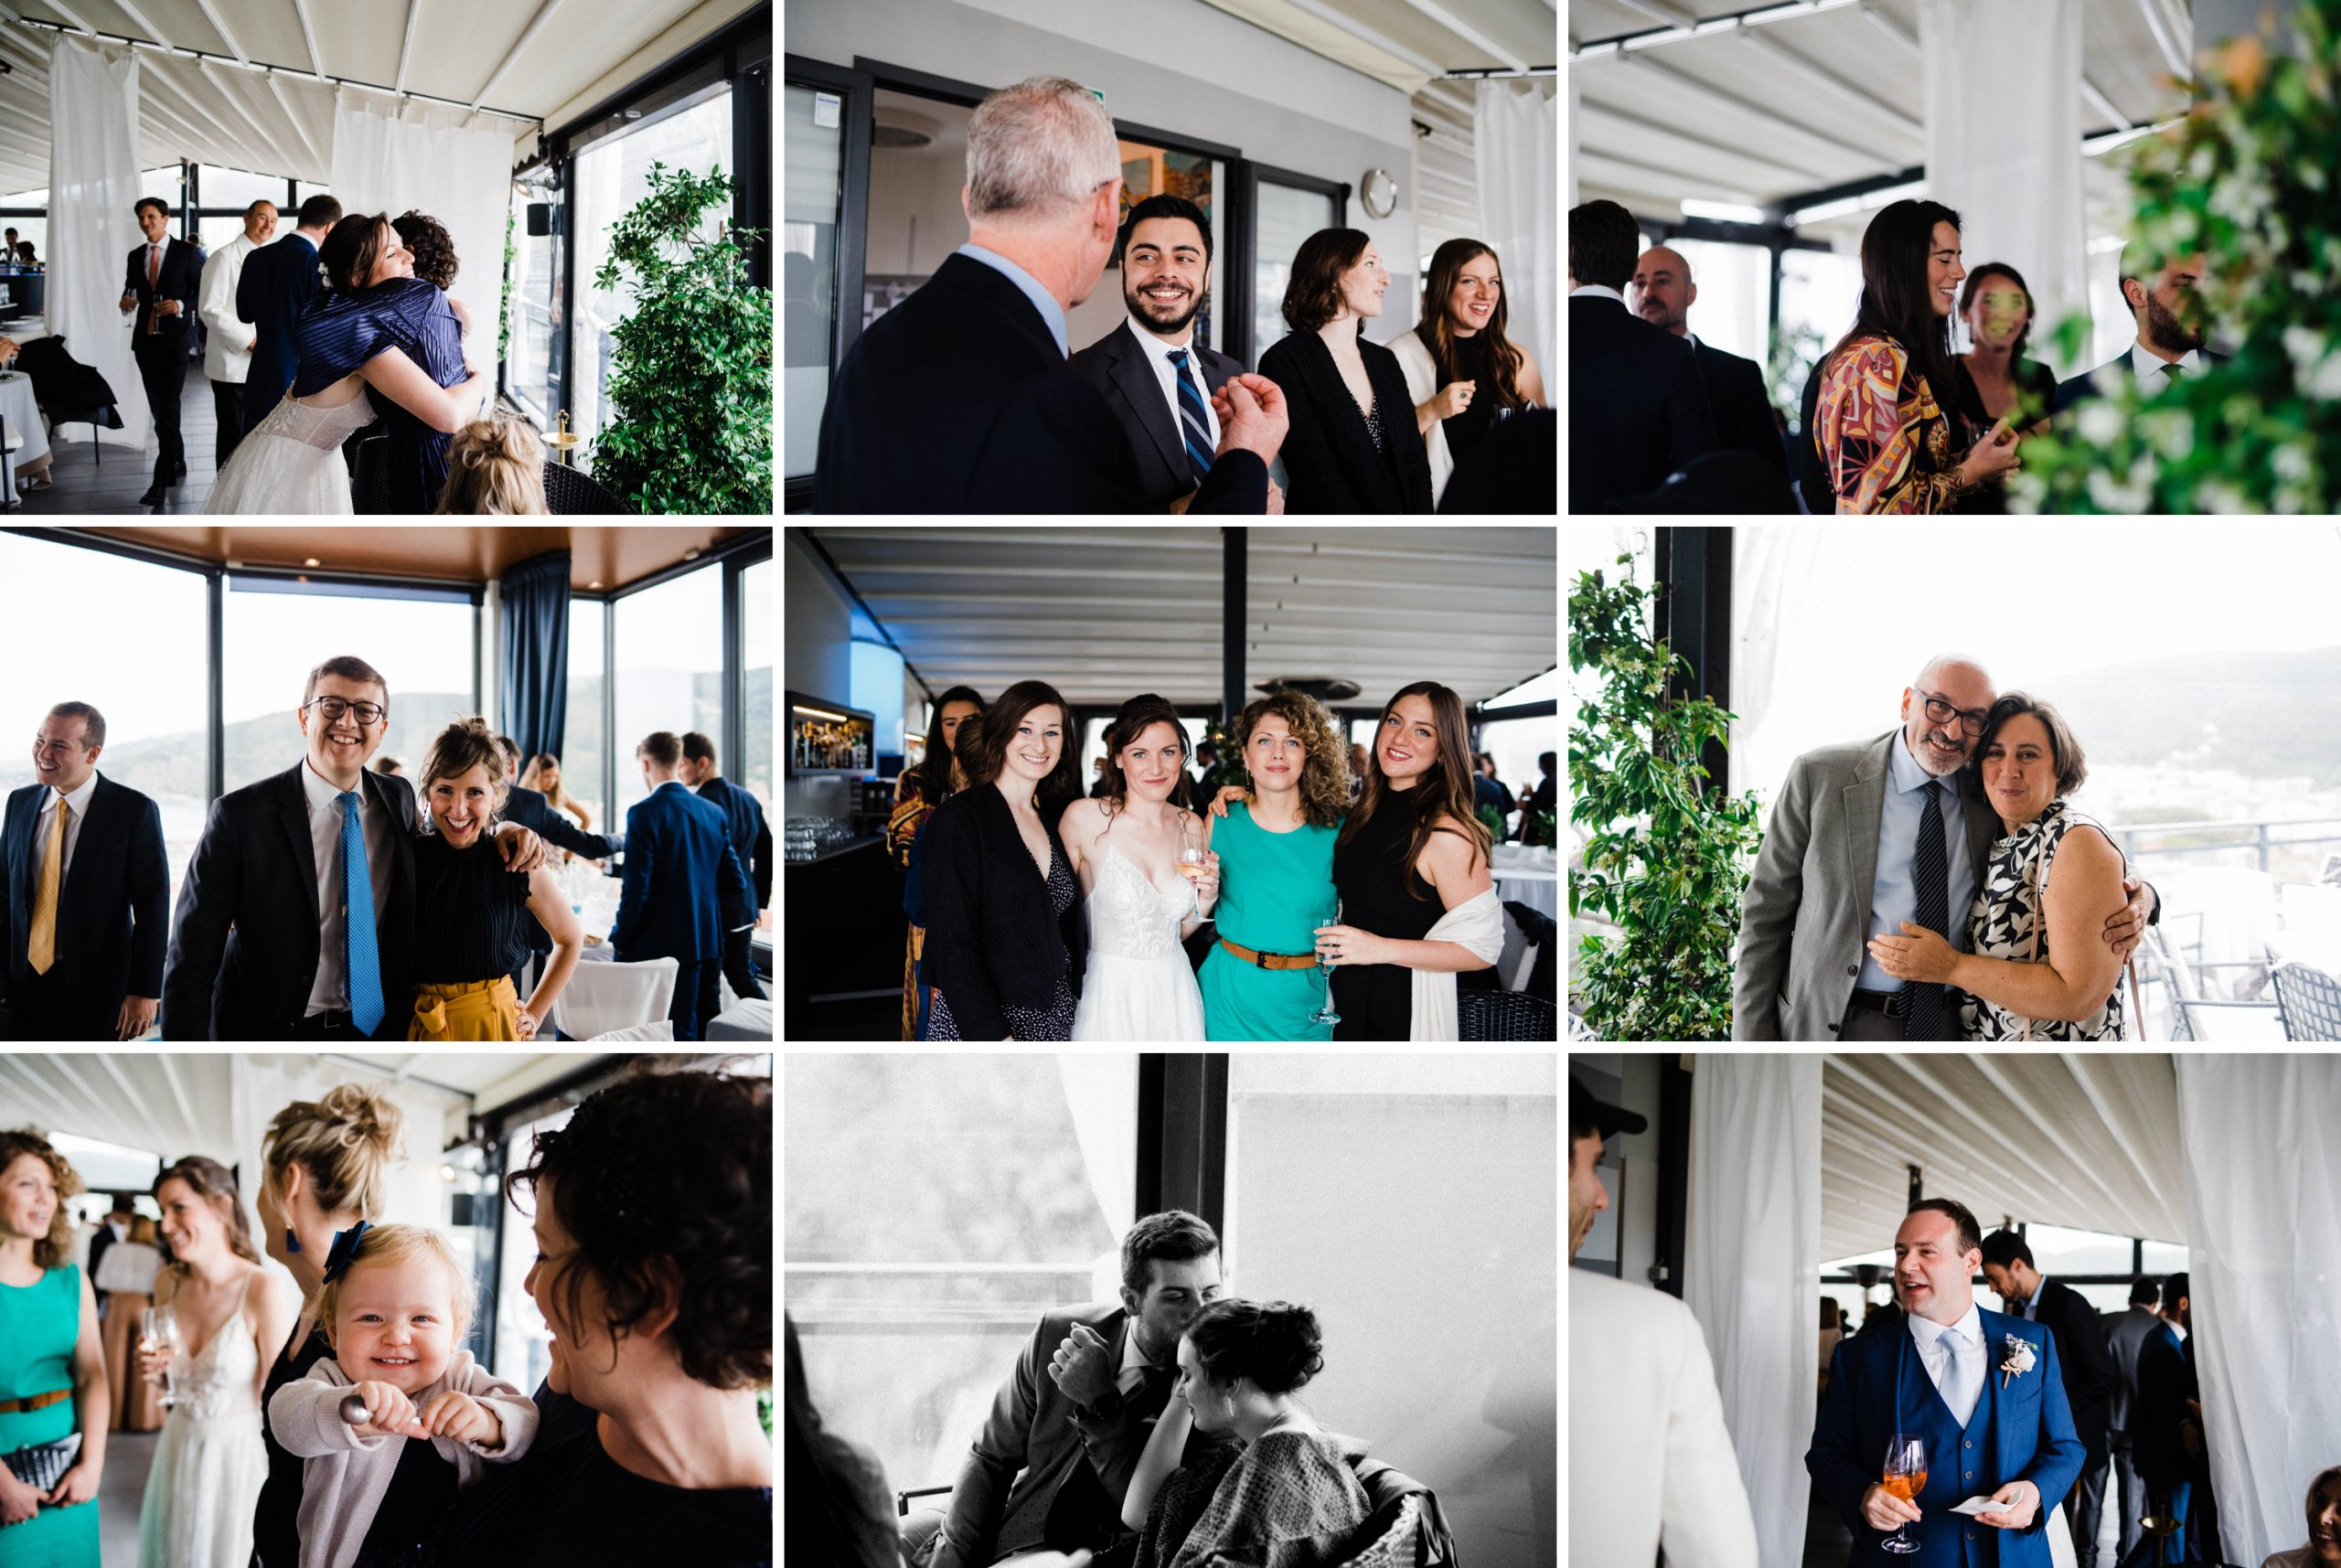 A collage of Candid Wedding Photos of guests taken at a Destination Wedding Reception at the Hotel Vis À Vis, Sestri Levante.